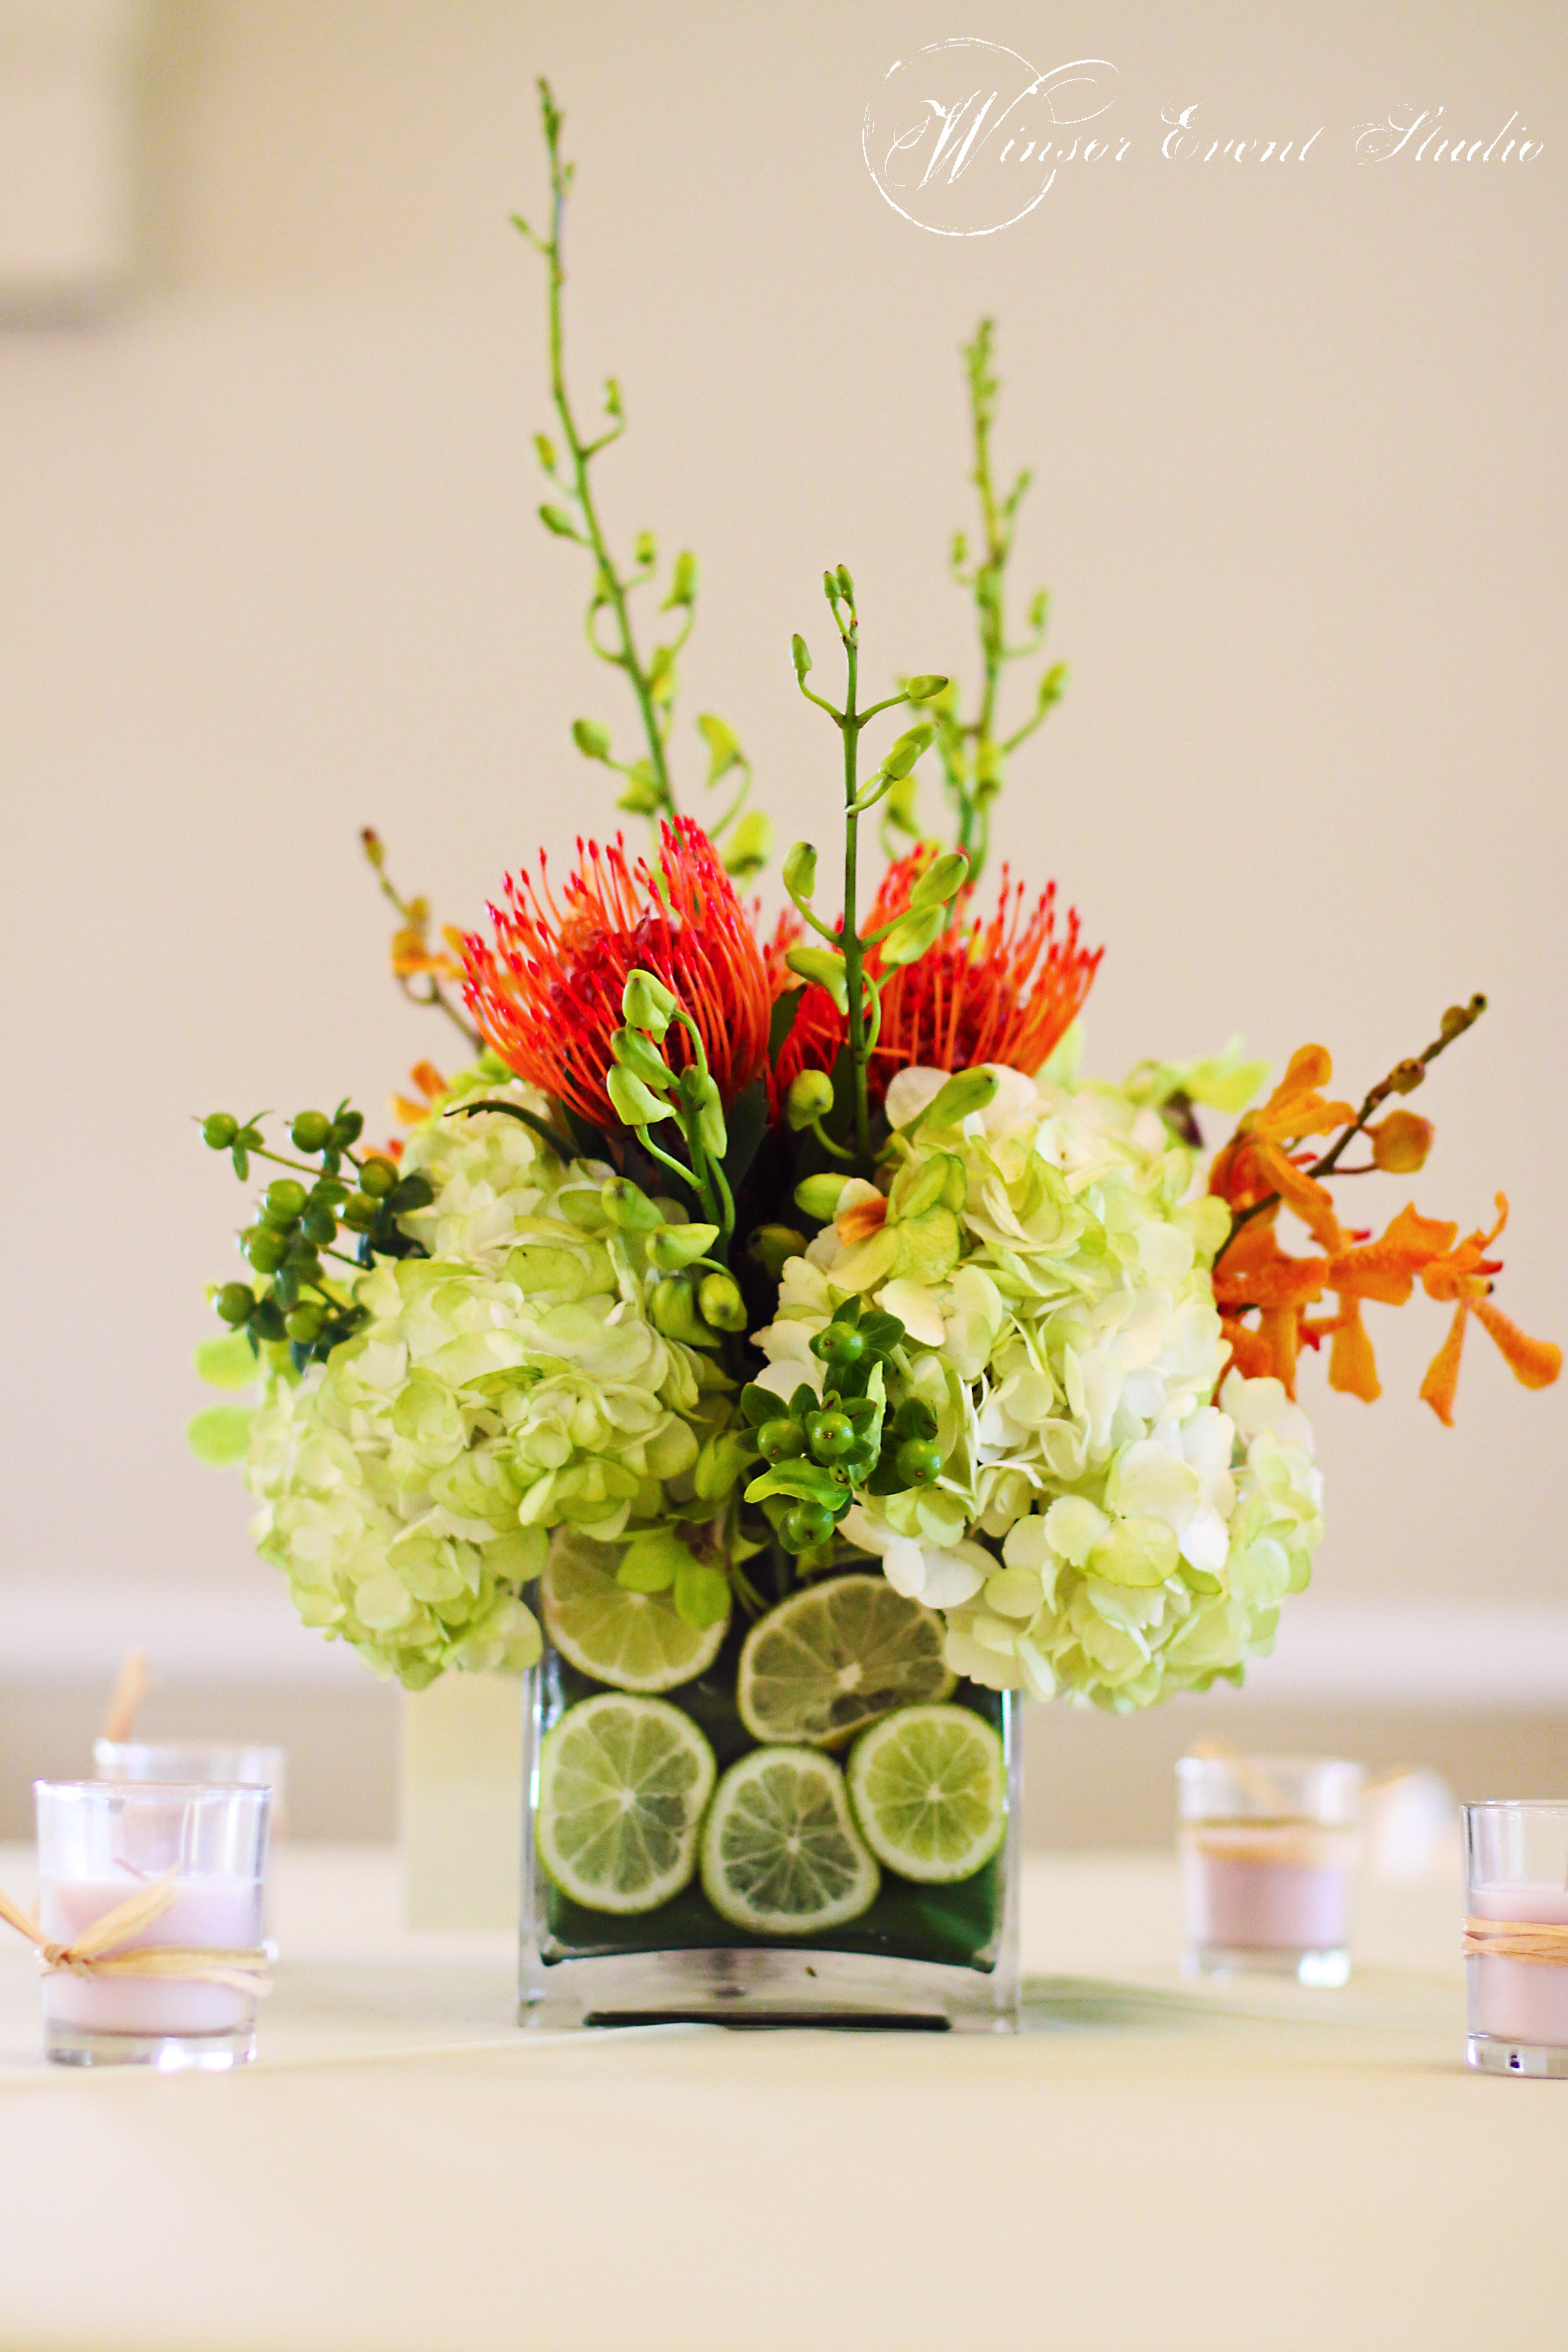 Centerpieces of hydrangea, protea, and orchids were displayed in vases filled with cut limes